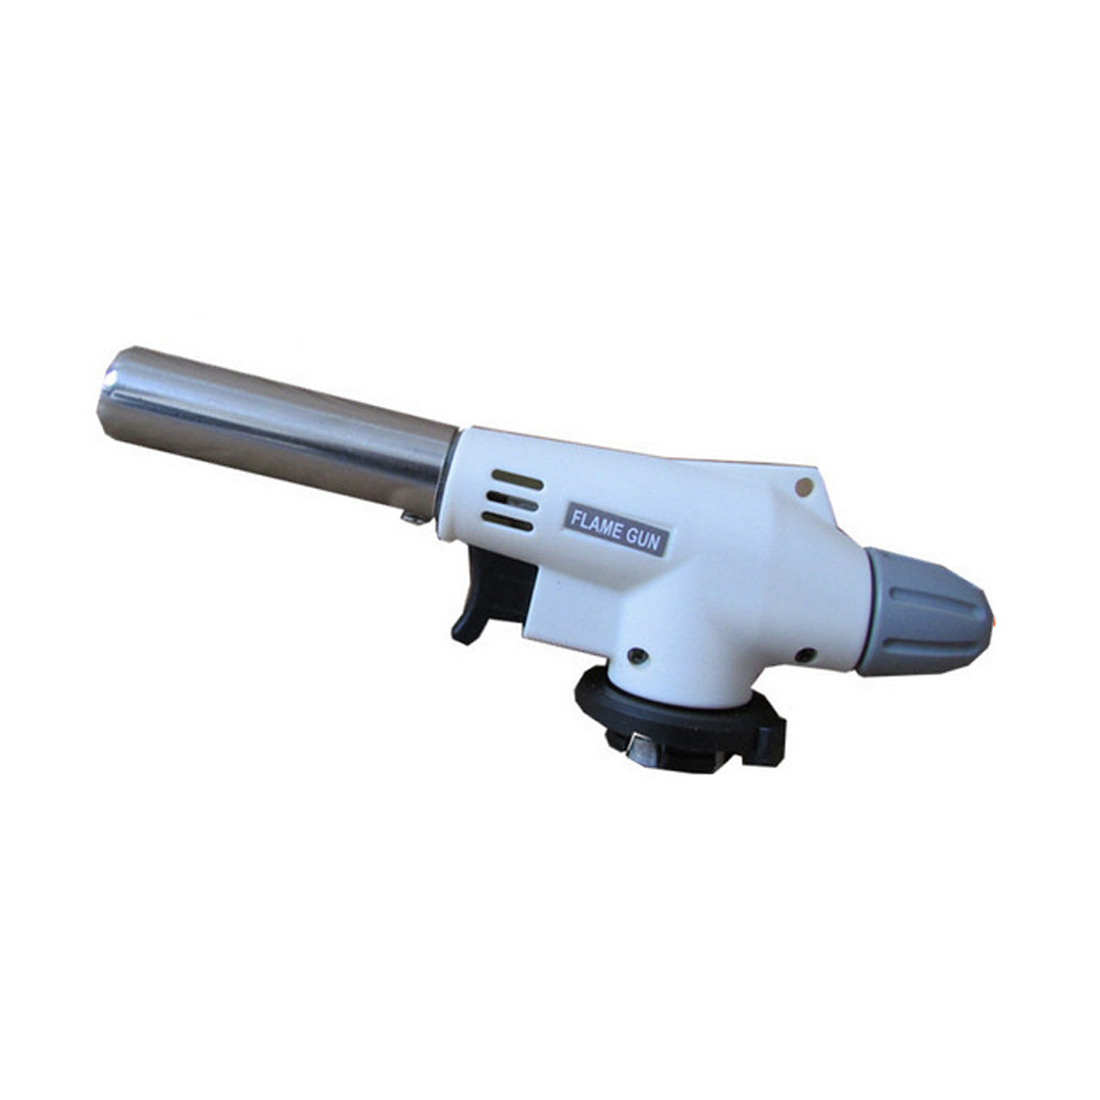 Multi-function Gun Blowtorch Cooking Soldering Butane AutoIgnition Gas-Burner Lighter Heating Welding Gas Burner Flame